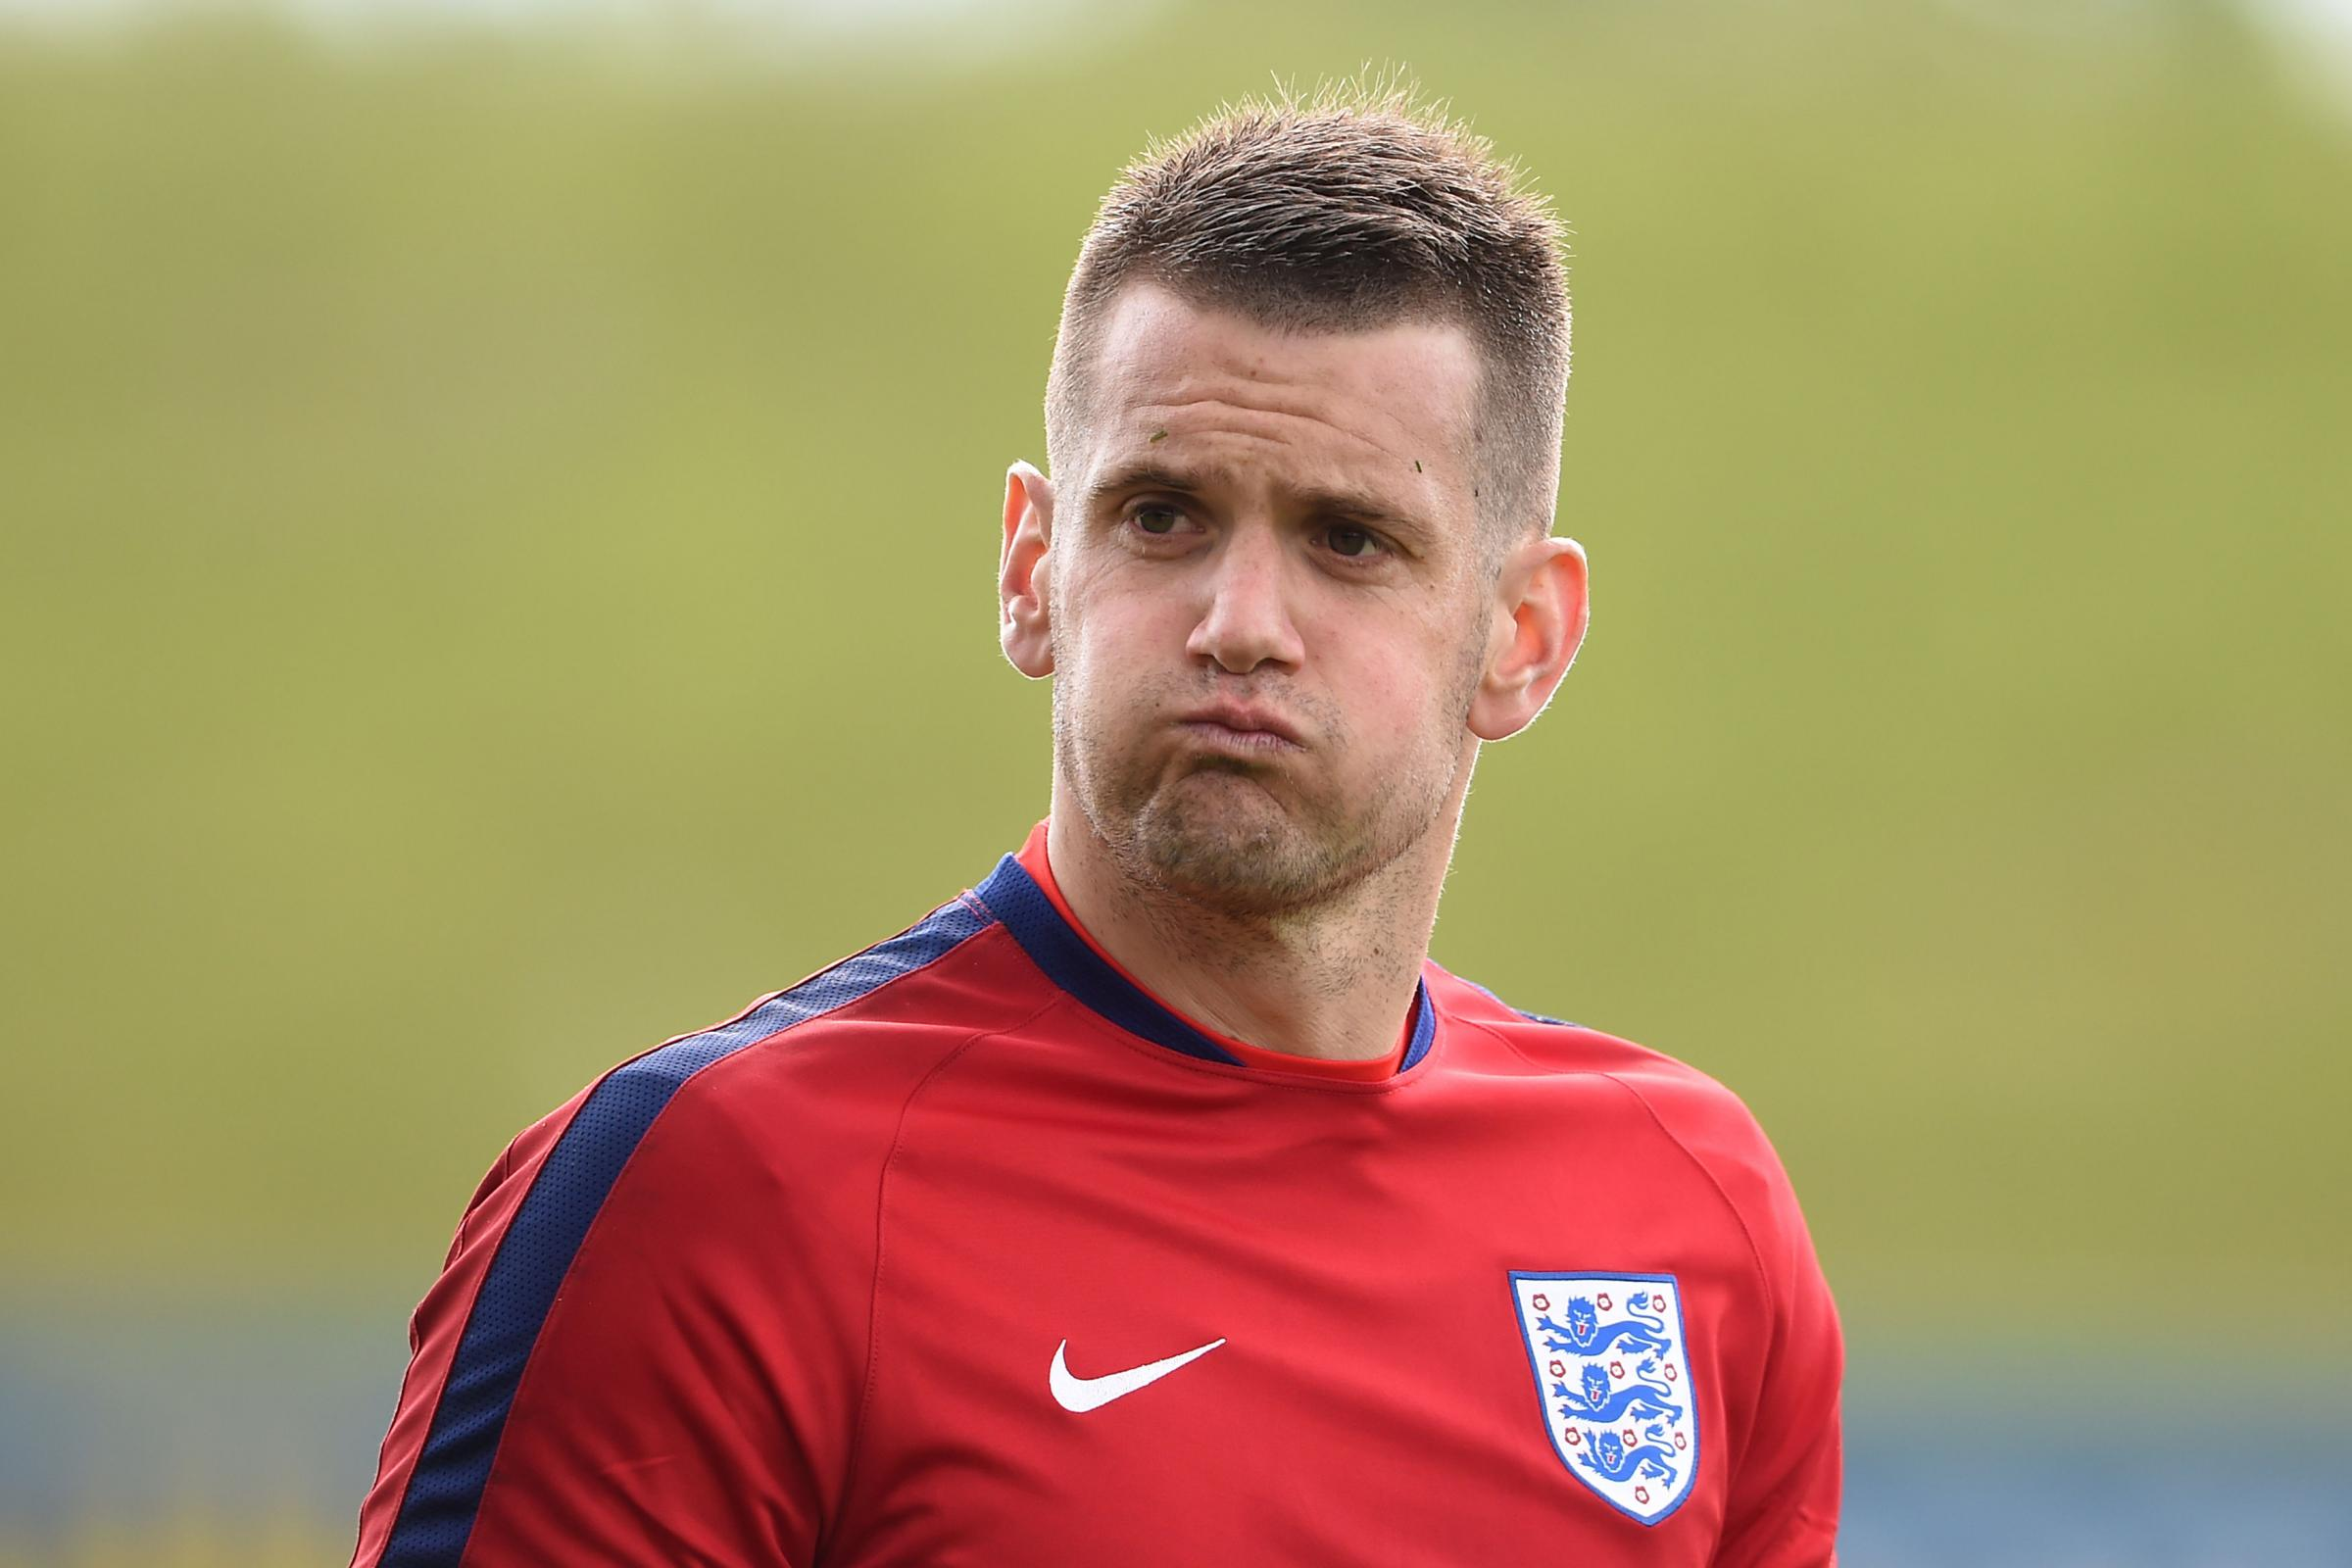 DEBUT: Tom Heaton made his England debut and became the first Burnley player to play for England since 1974